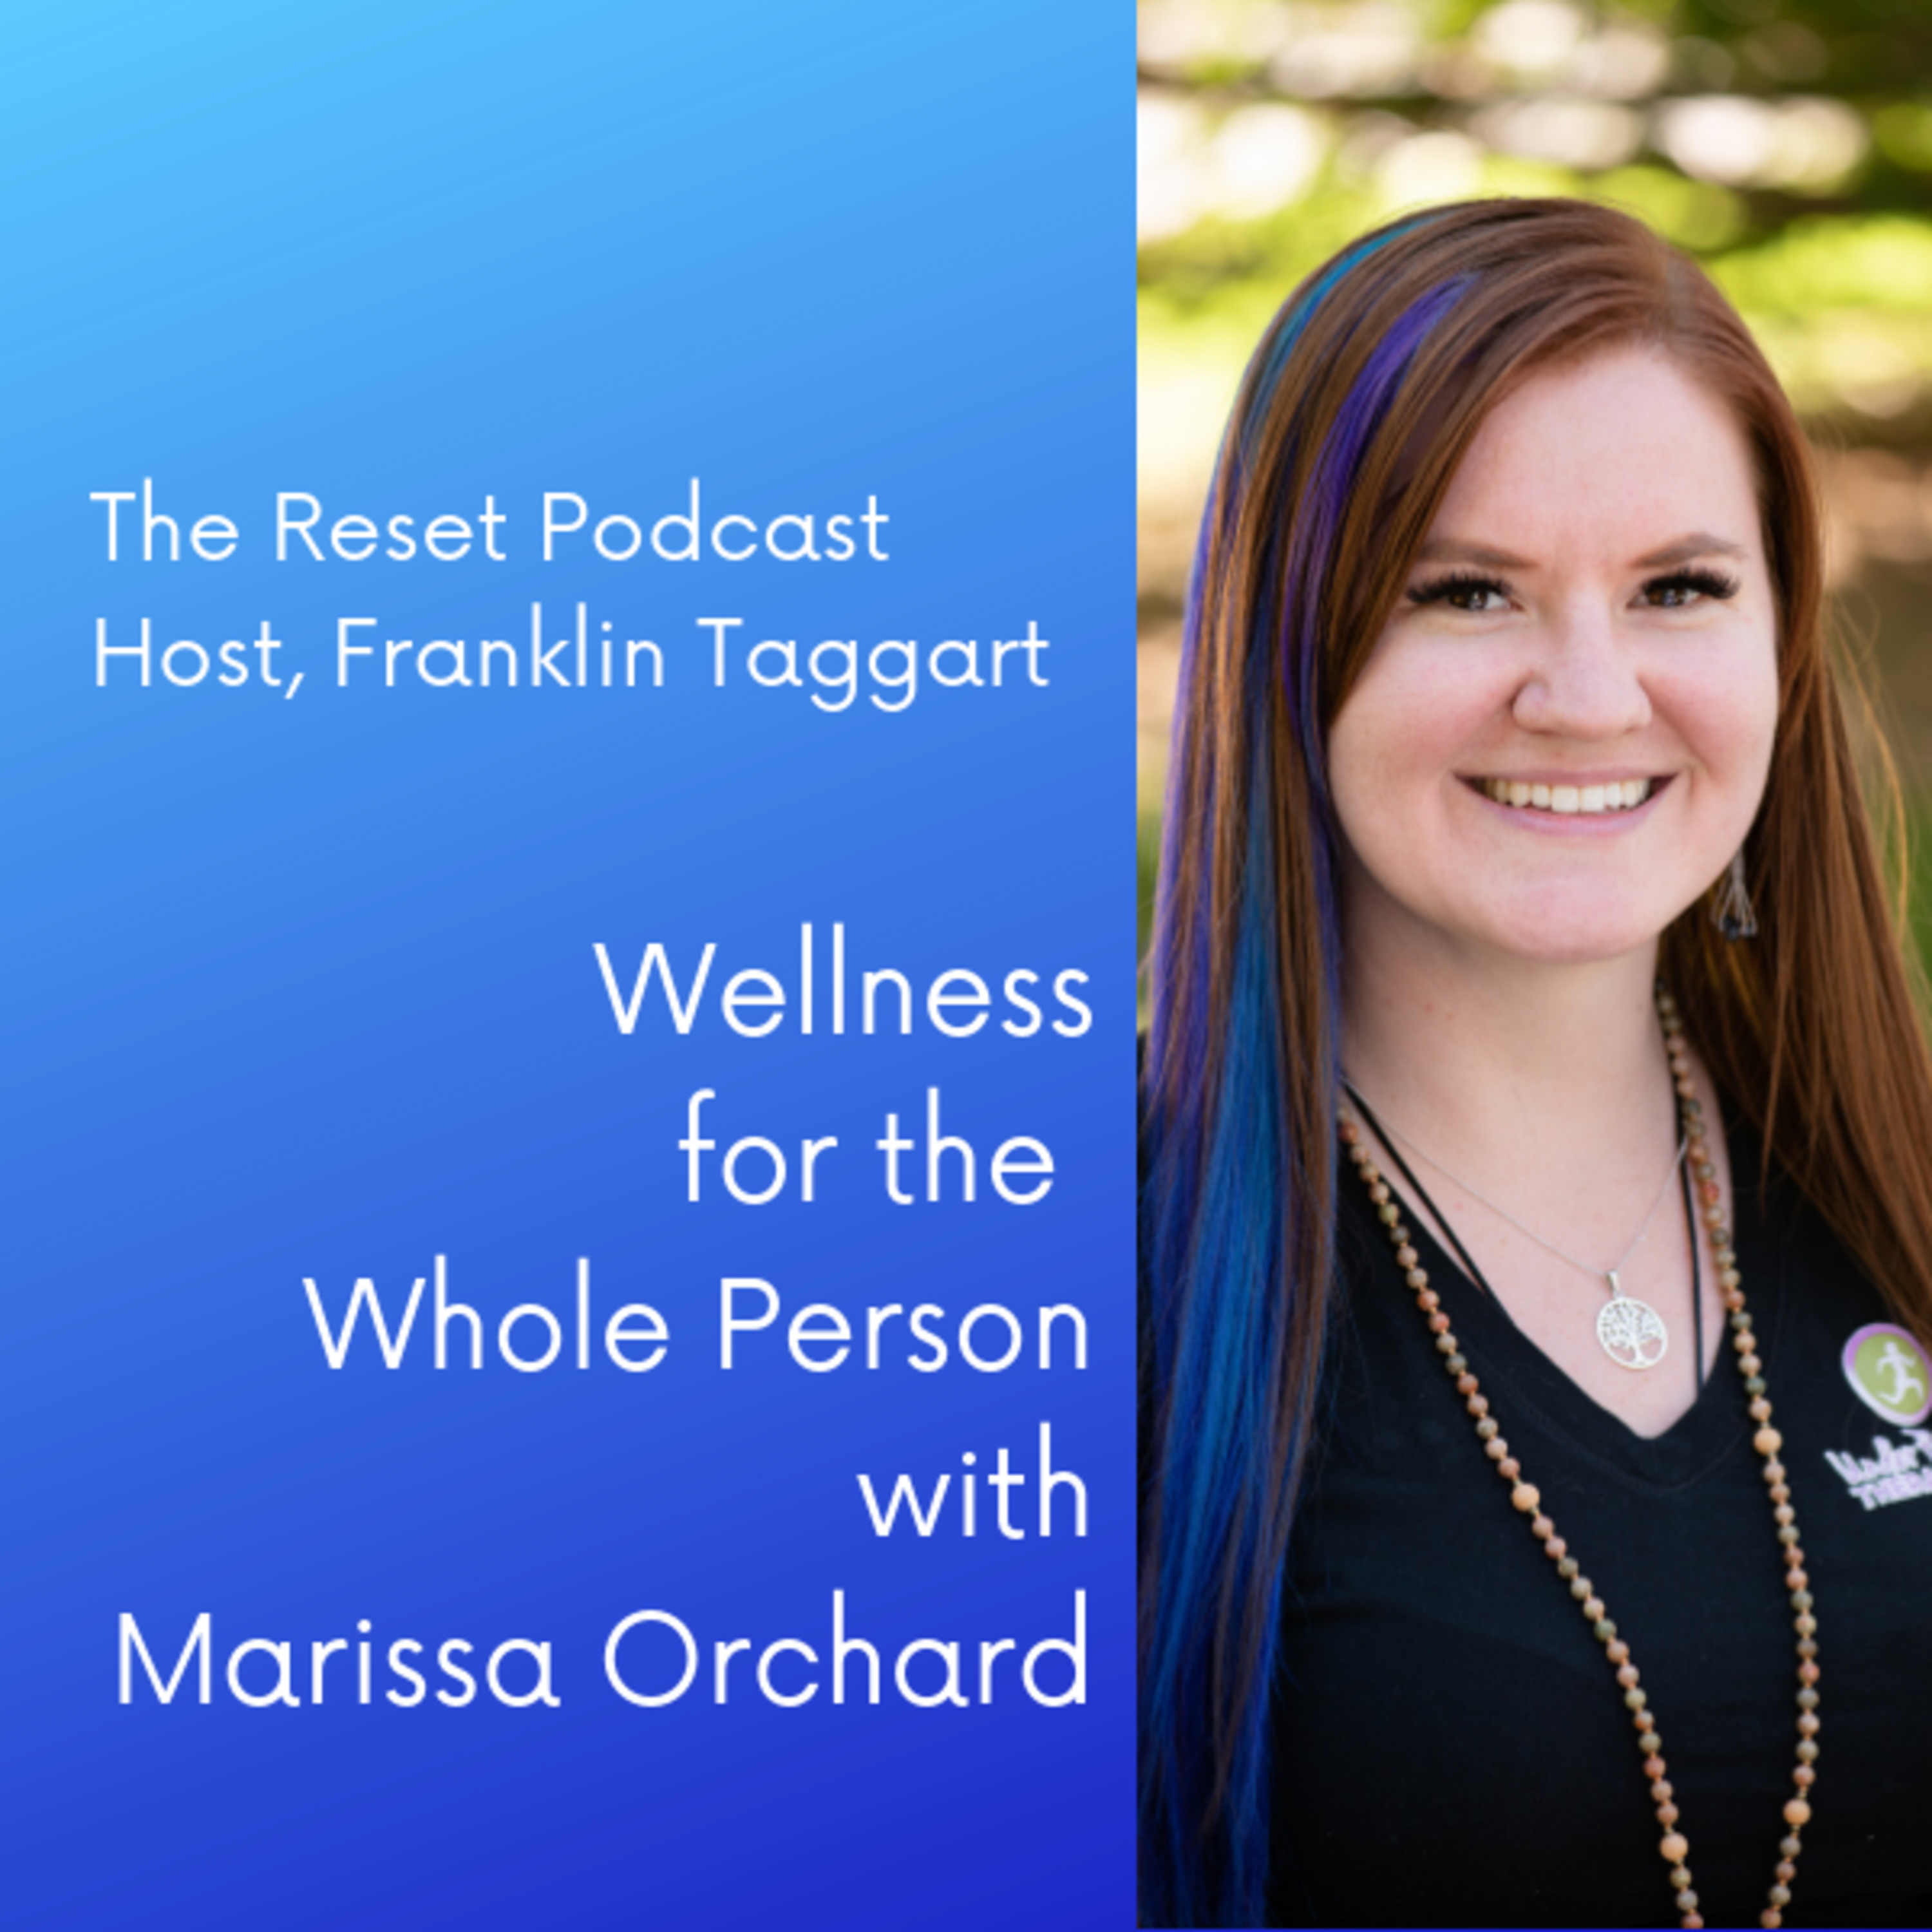 Wellness for the Whole Person with Marissa Orchard